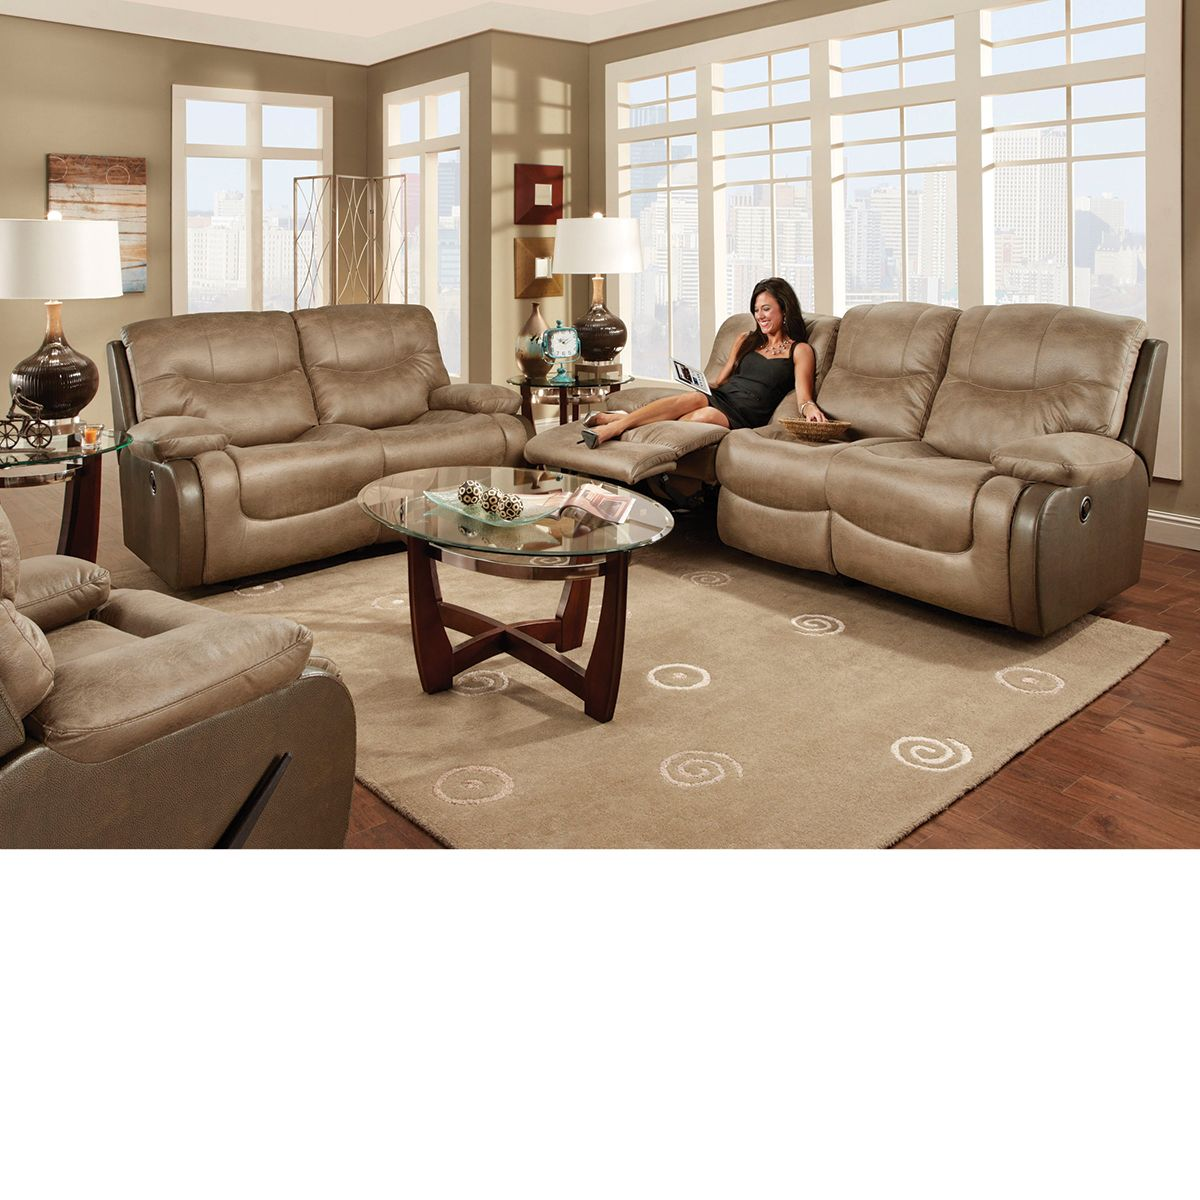 The Dump Luxe Furniture Outlet Luxe Furniture Furniture Outlet Furniture #the #dump #living #room #furniture